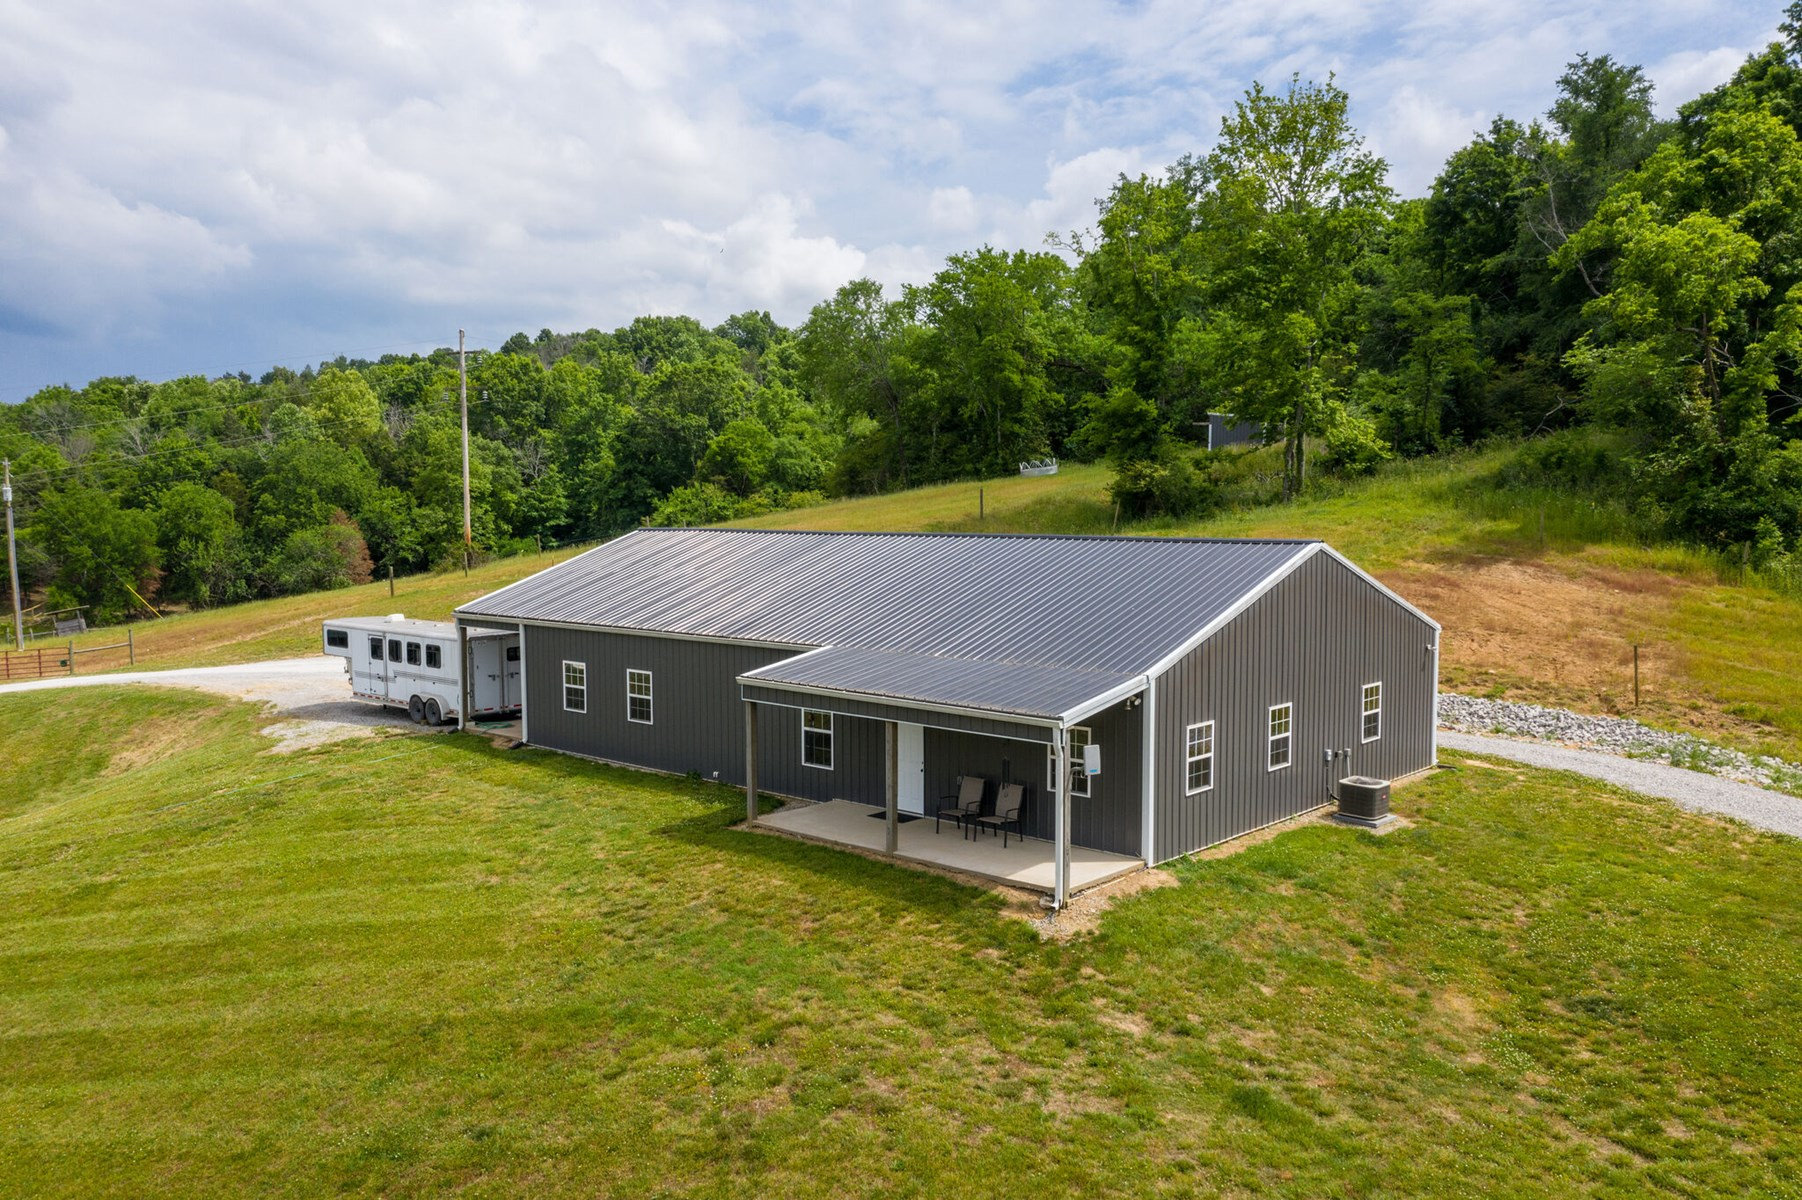 Tennessee Farm with Acreage for Sale in Giles County